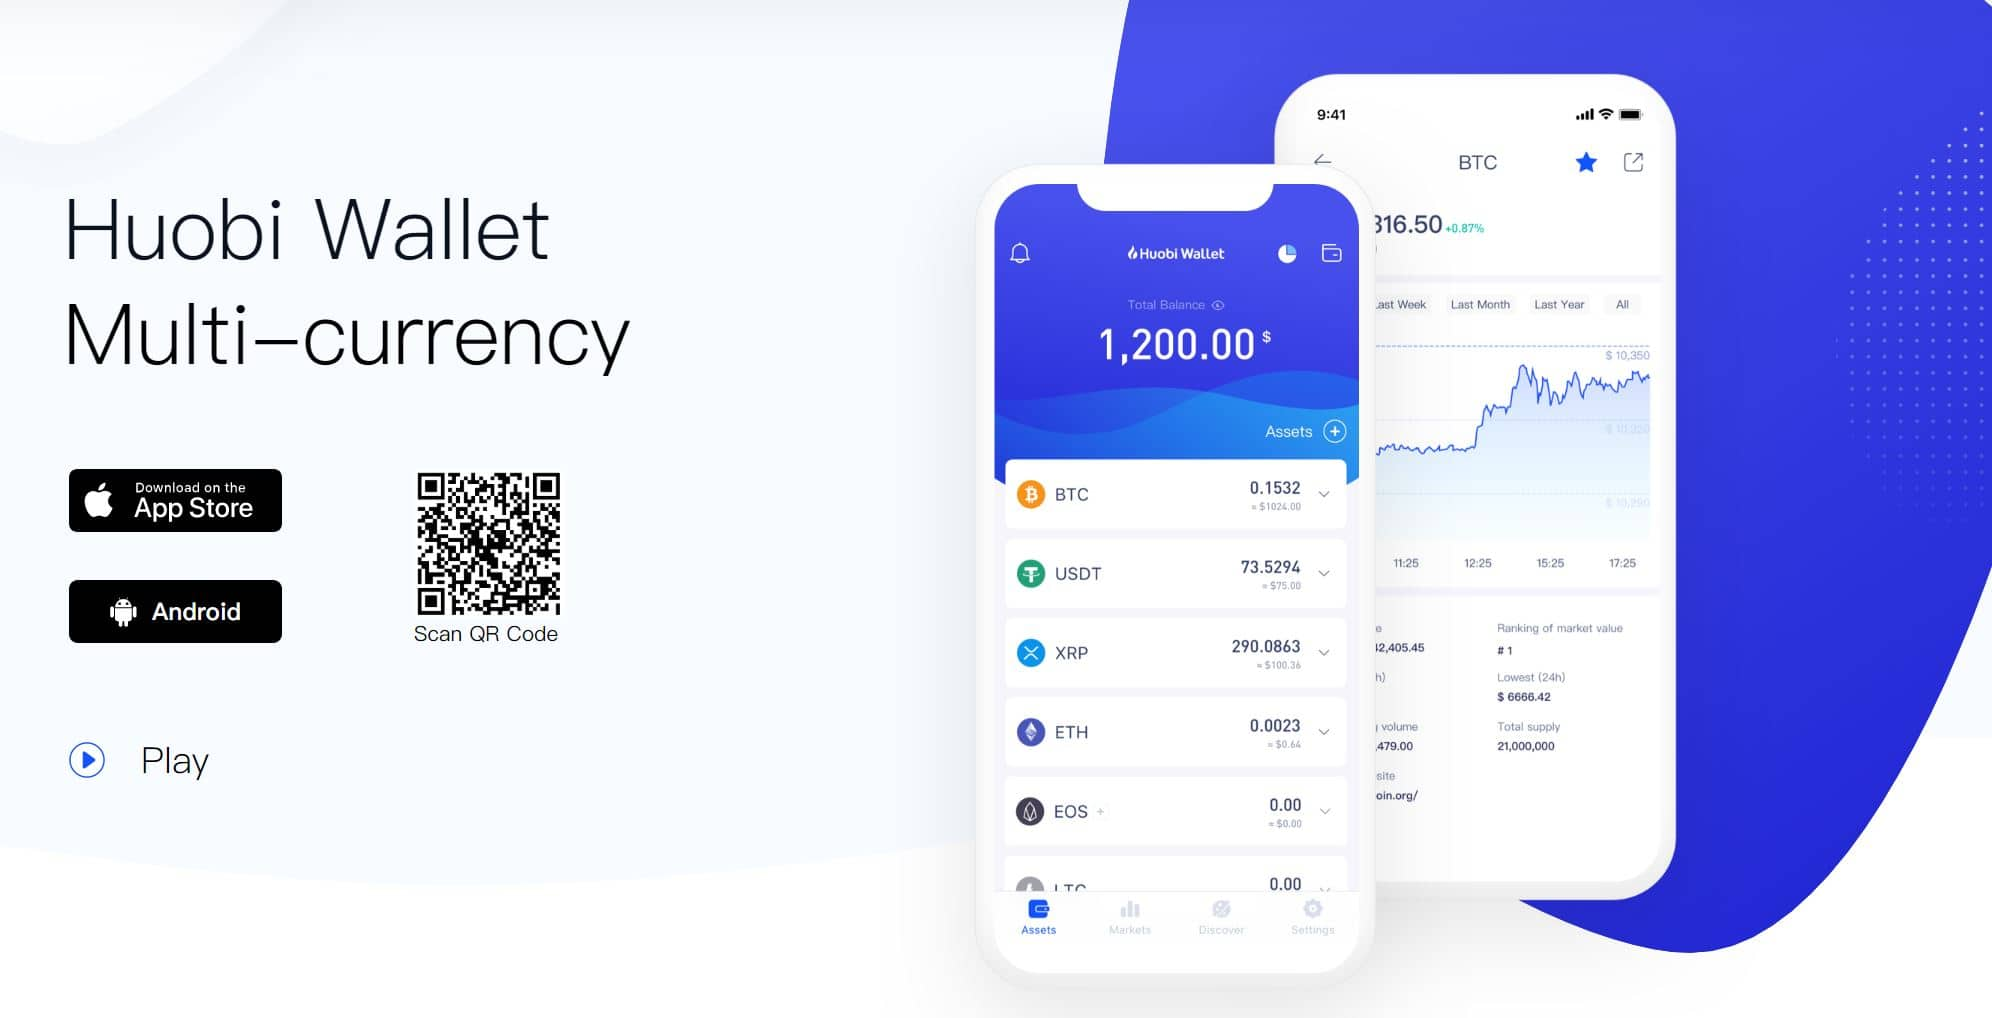 huobi wallet has become popular lately thanks to its unique features